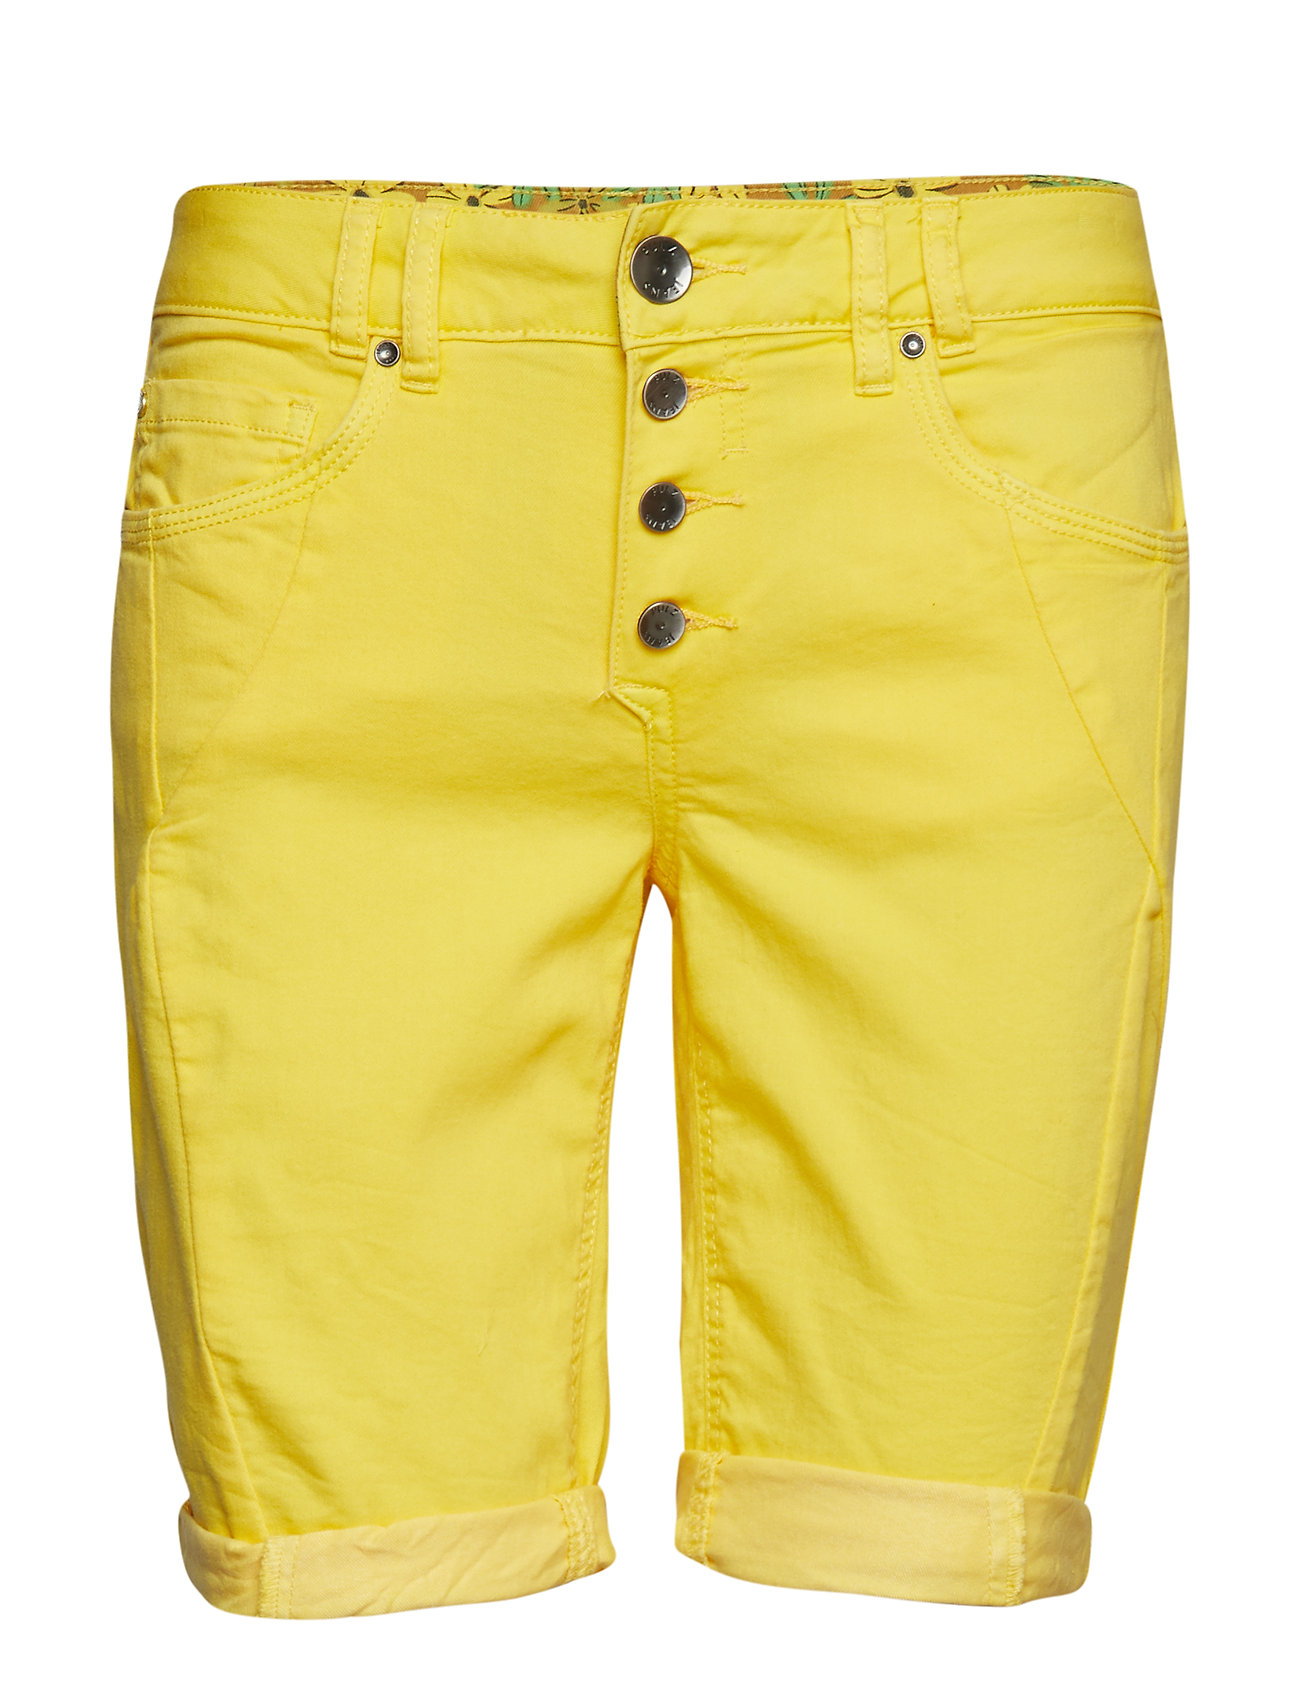 032191a59bd Pulz Jeans Rosita Shorts (Aspen Gold), (56 €) | Large selection of ...